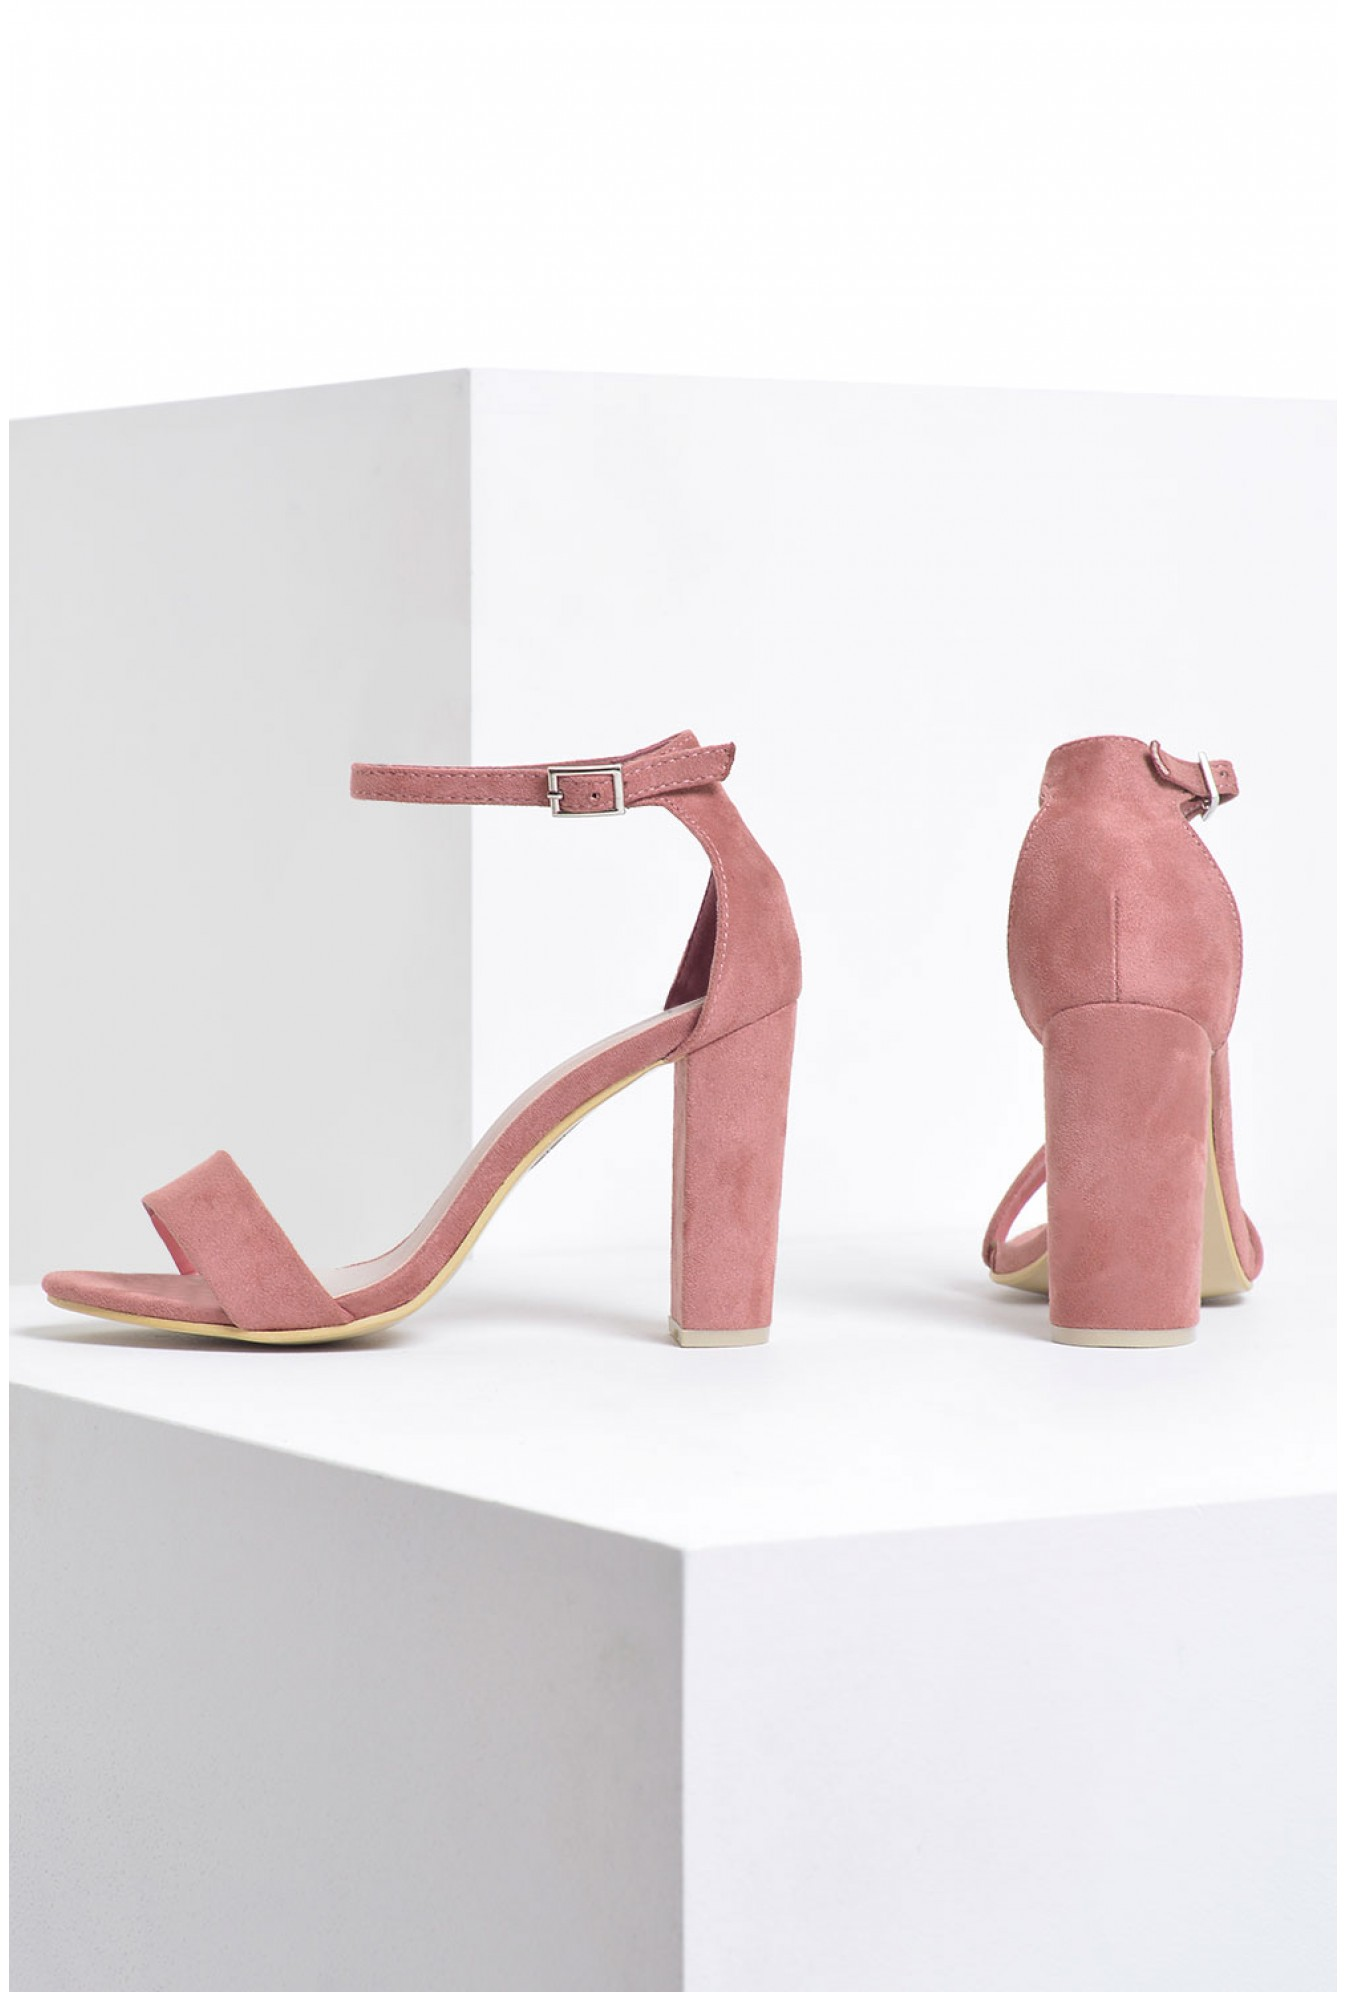 1c5b9ce990 No Doubt Molly Block Heel Sandals in Blush Suede | iCLOTHING